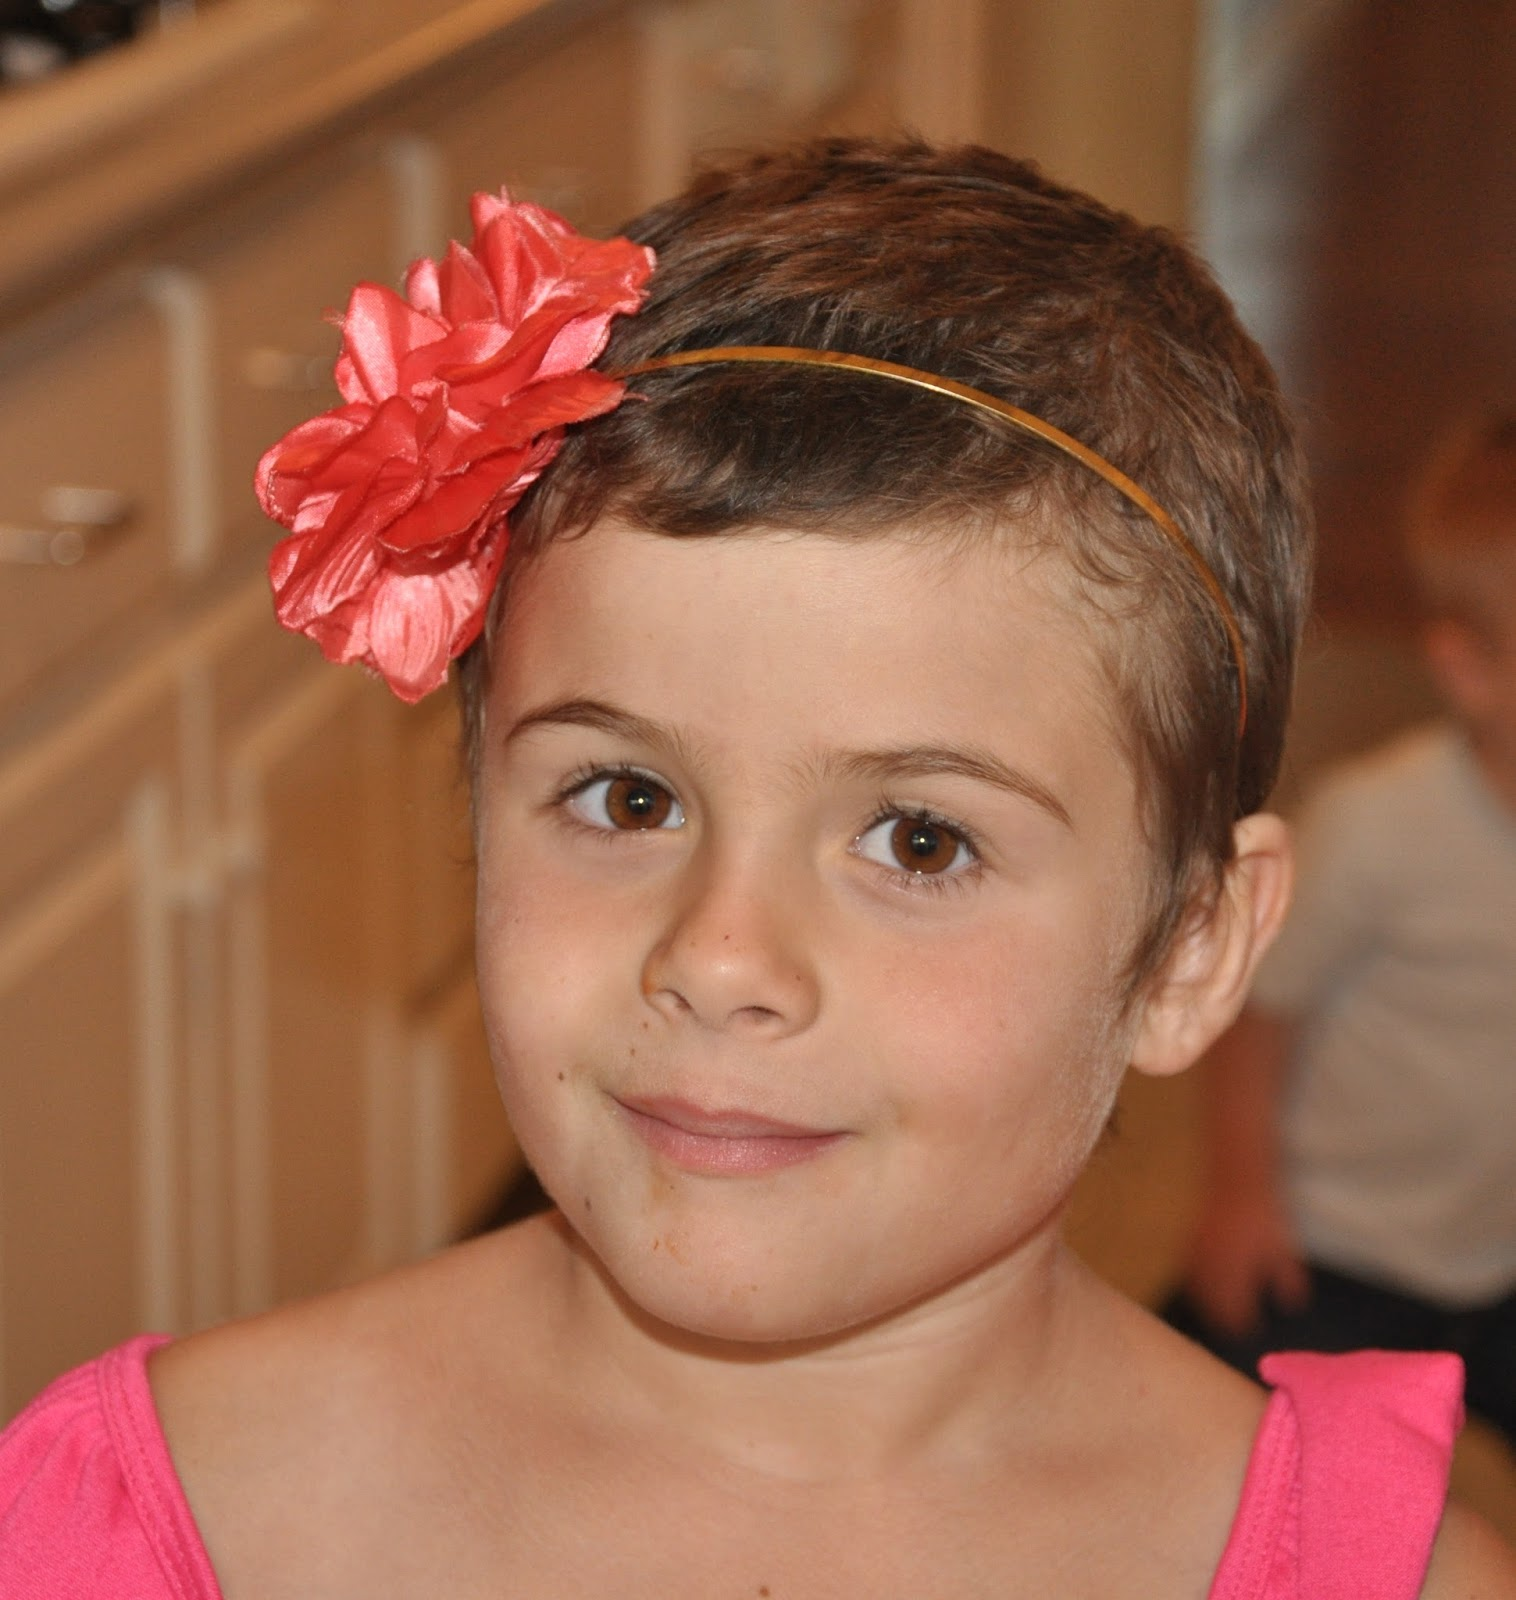 best hairstyles for men women boys girls and kids: 32 cute and